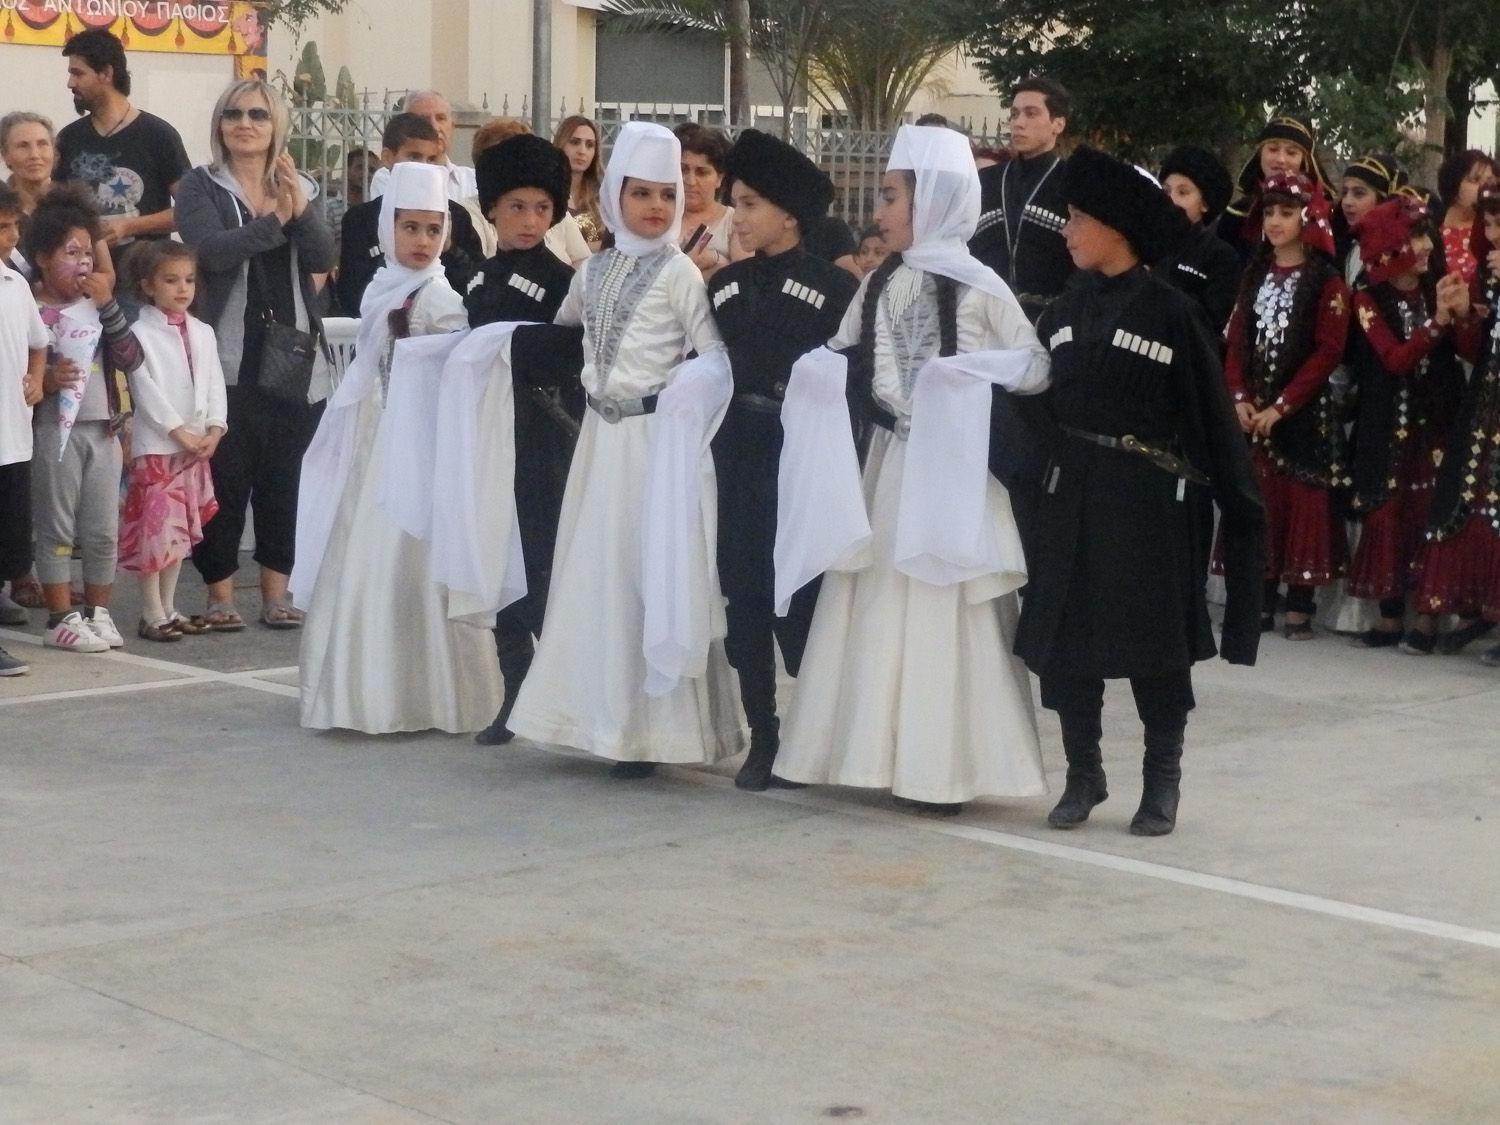 multicultural_Childrens_Festival_Ayios_Dhometios28516_23